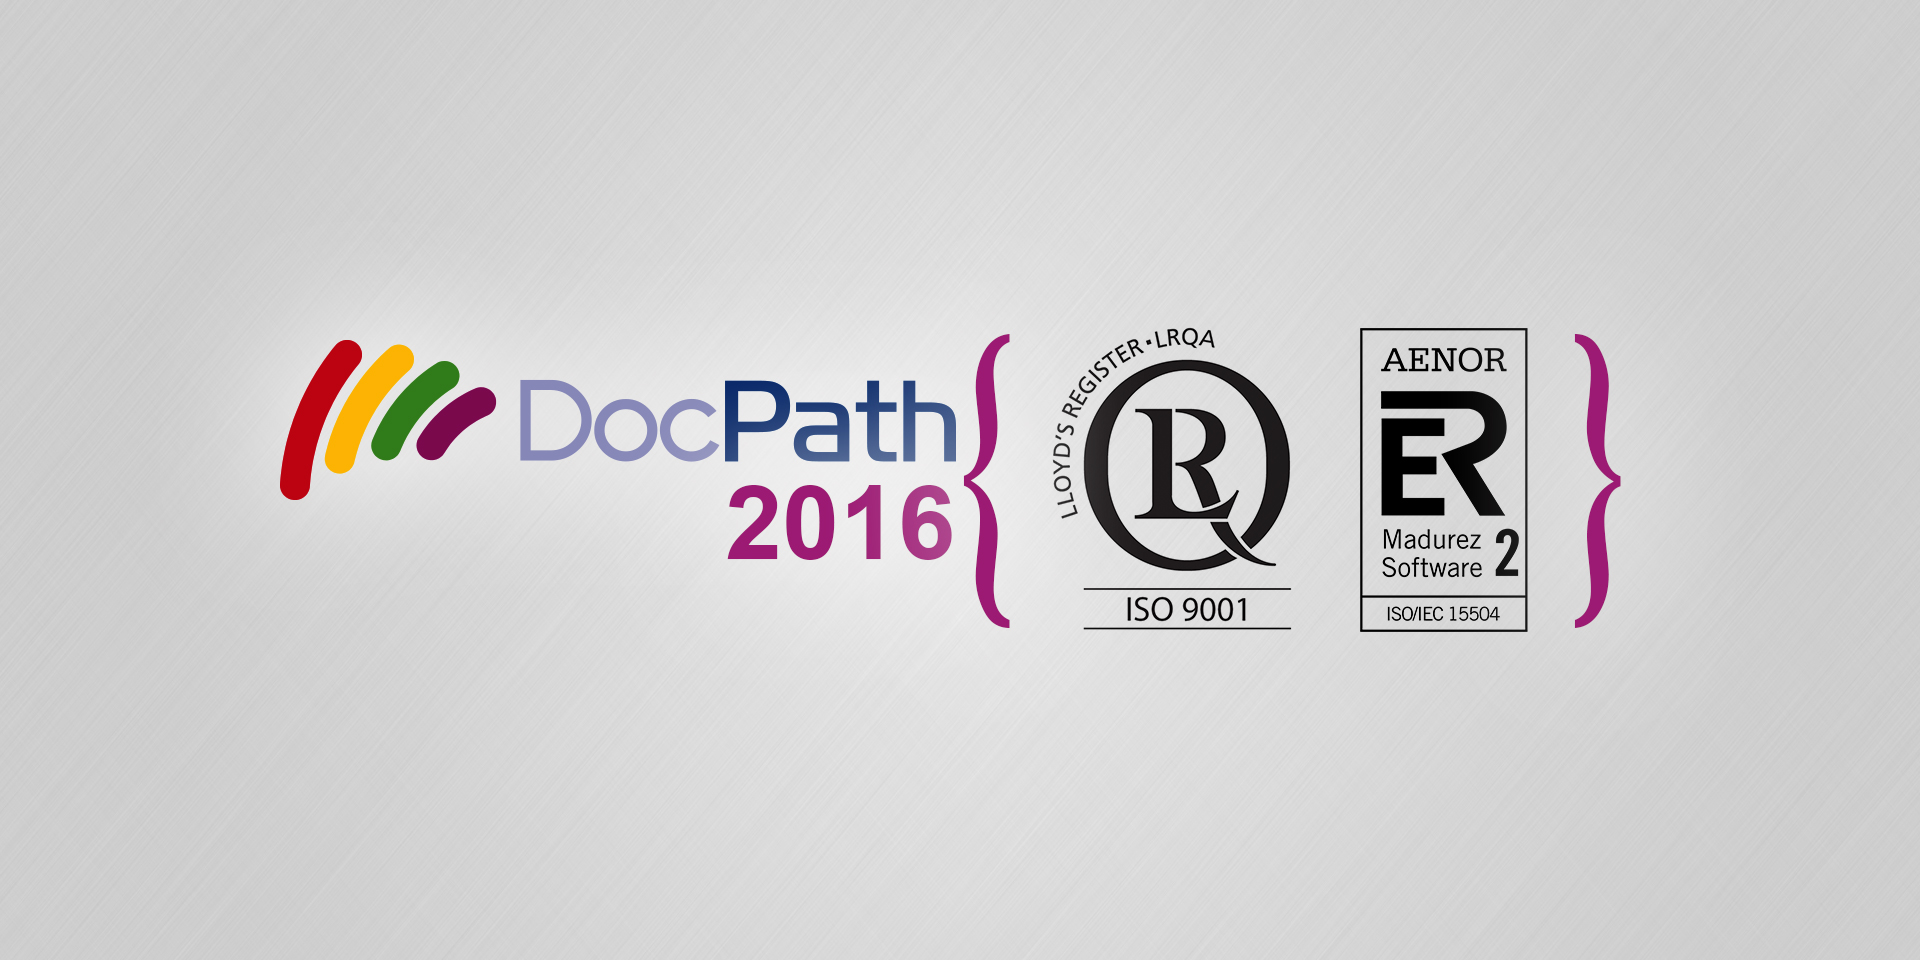 Docpath Document Software Sustains Its Quality Standards With